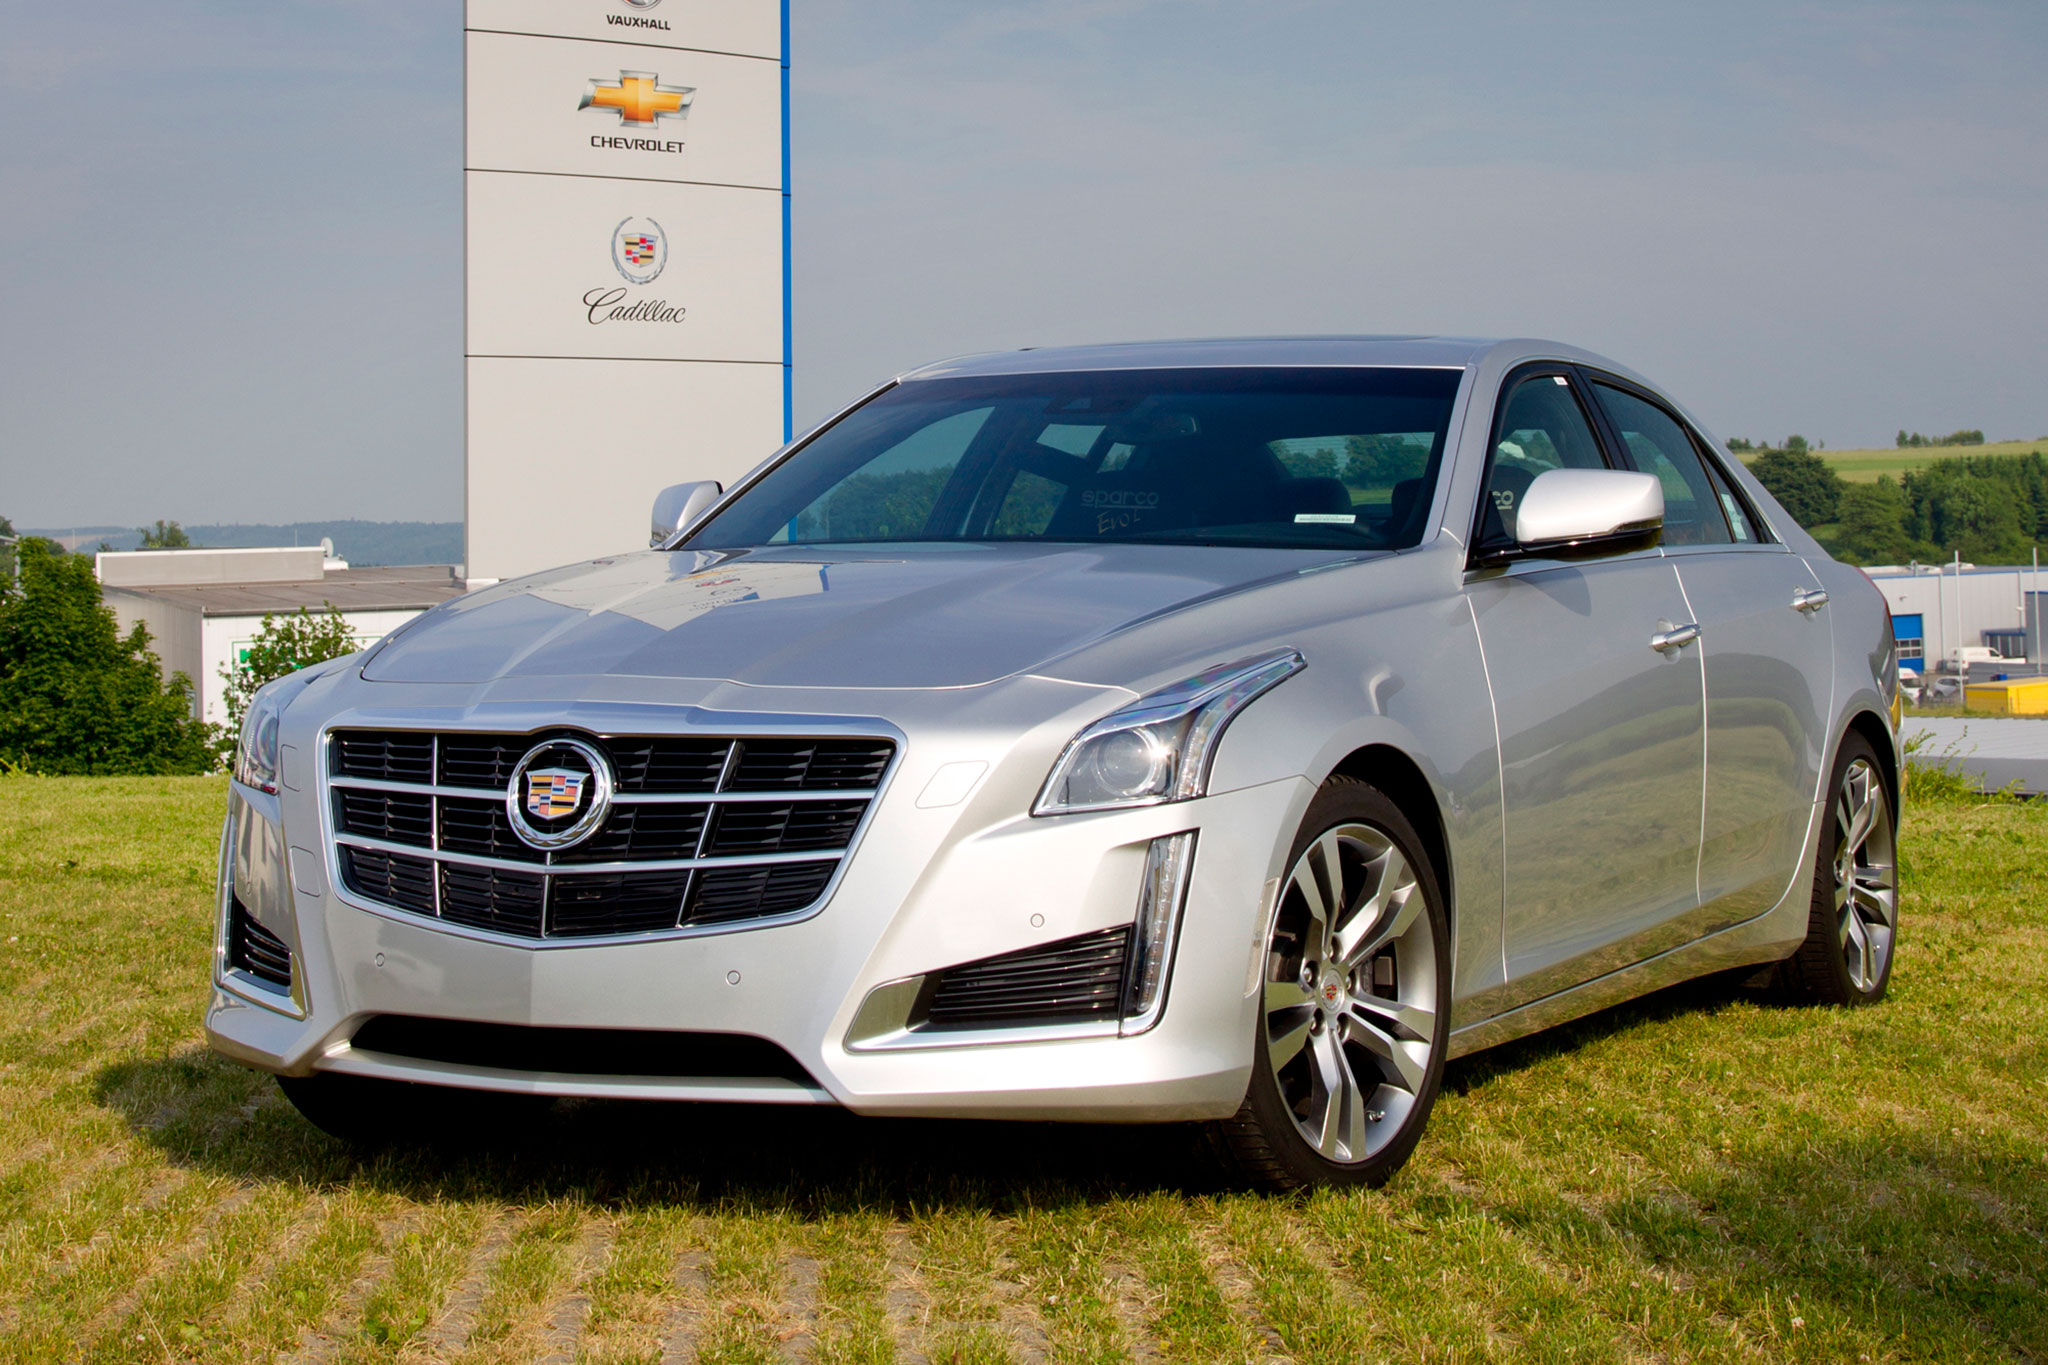 2014 Cadillac CTS First Drive - Automobile Magazine